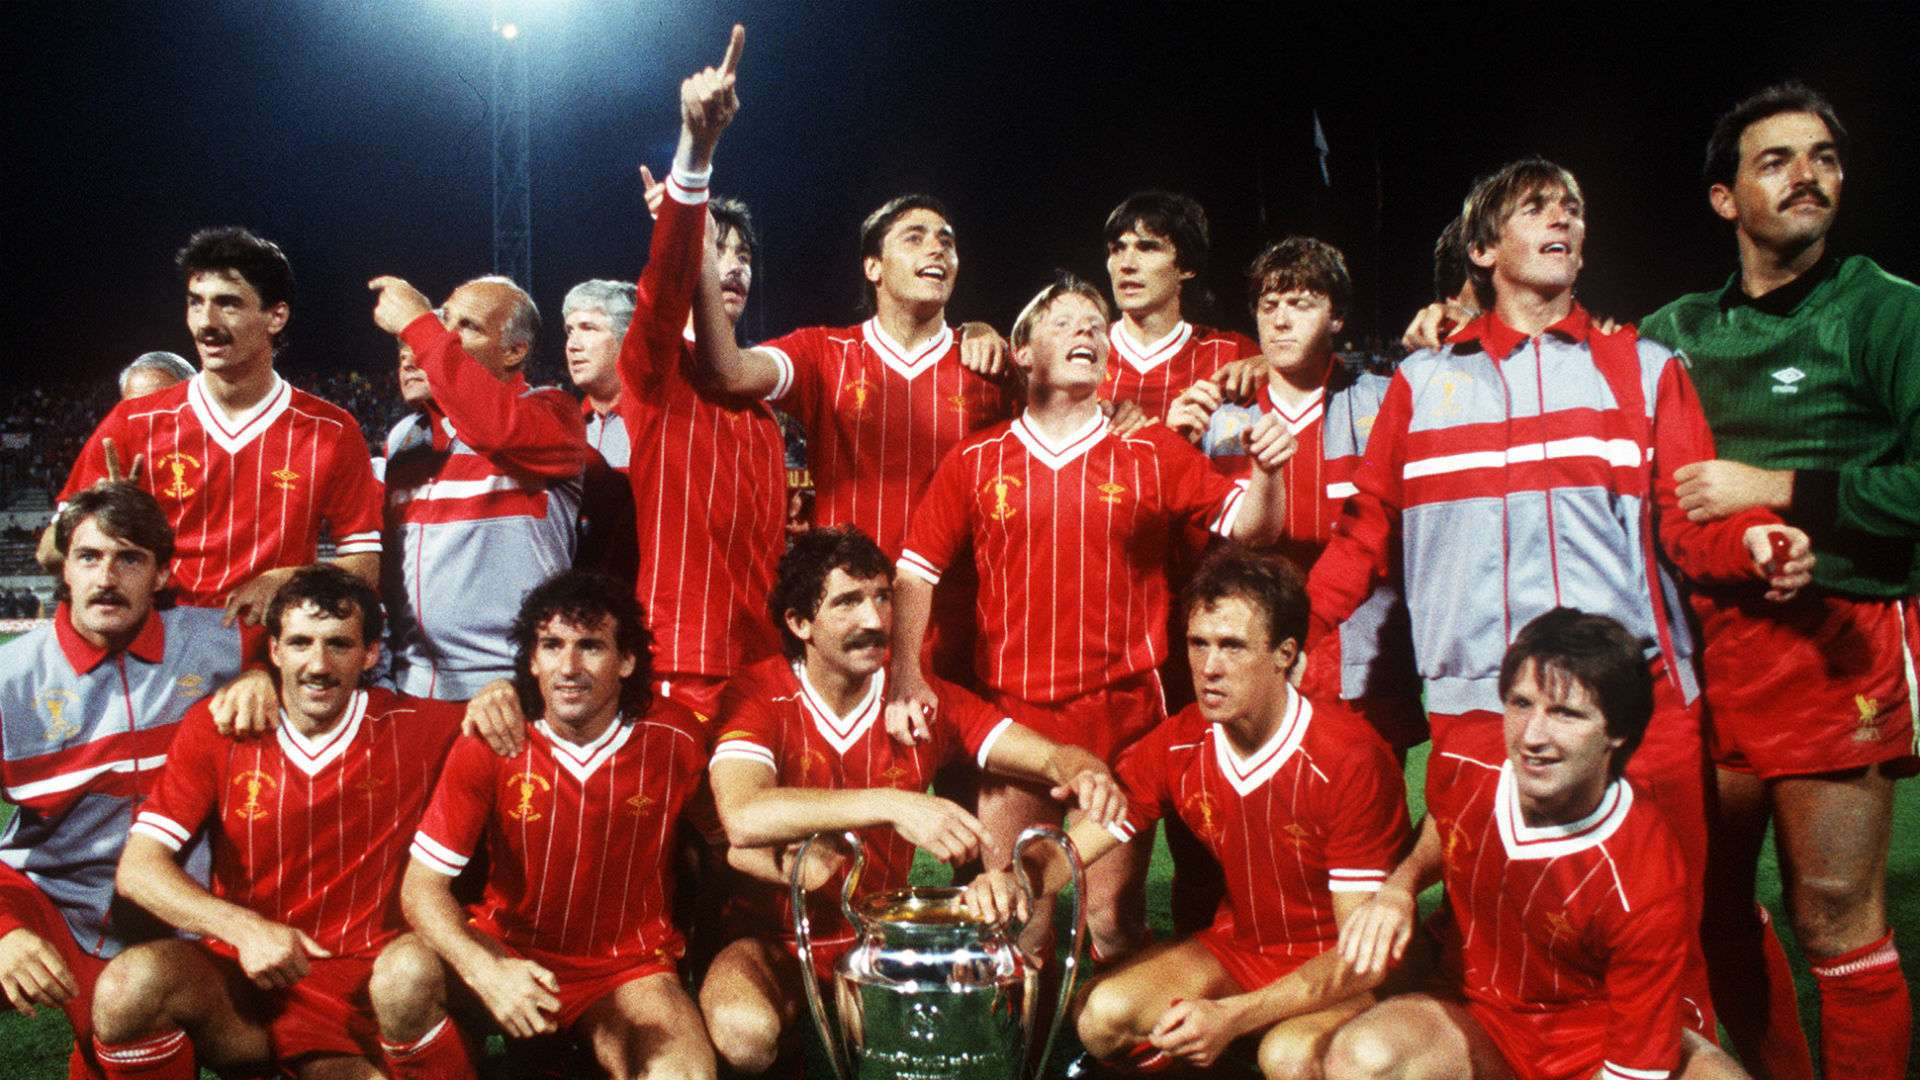 Liverpool S Champions League History How Many European Titles Have They Won Goal Com